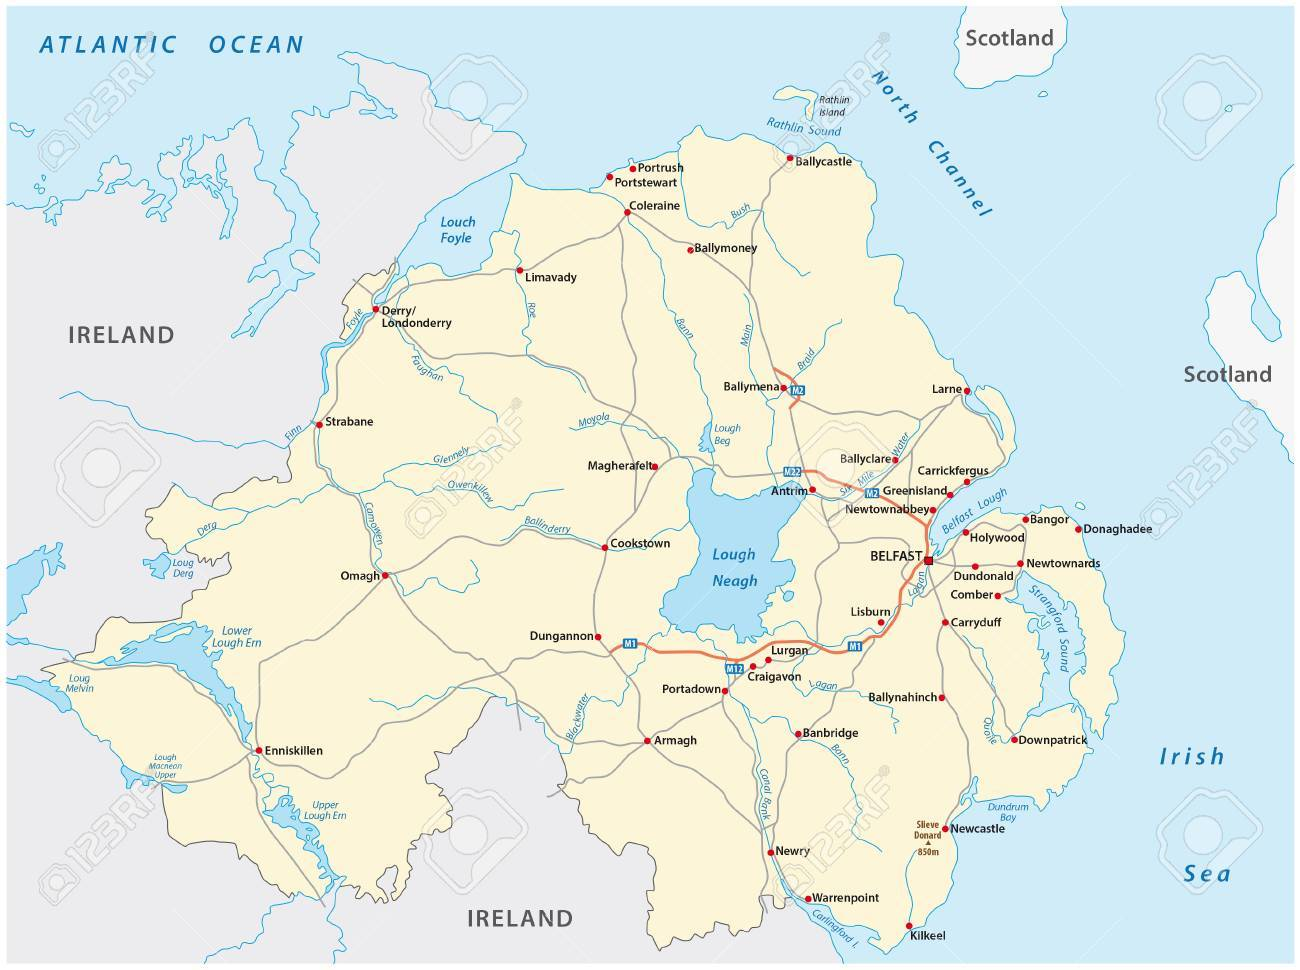 Detailed Road Map Of Ireland.Detailed Road Map Of The British Province Of Northern Ireland